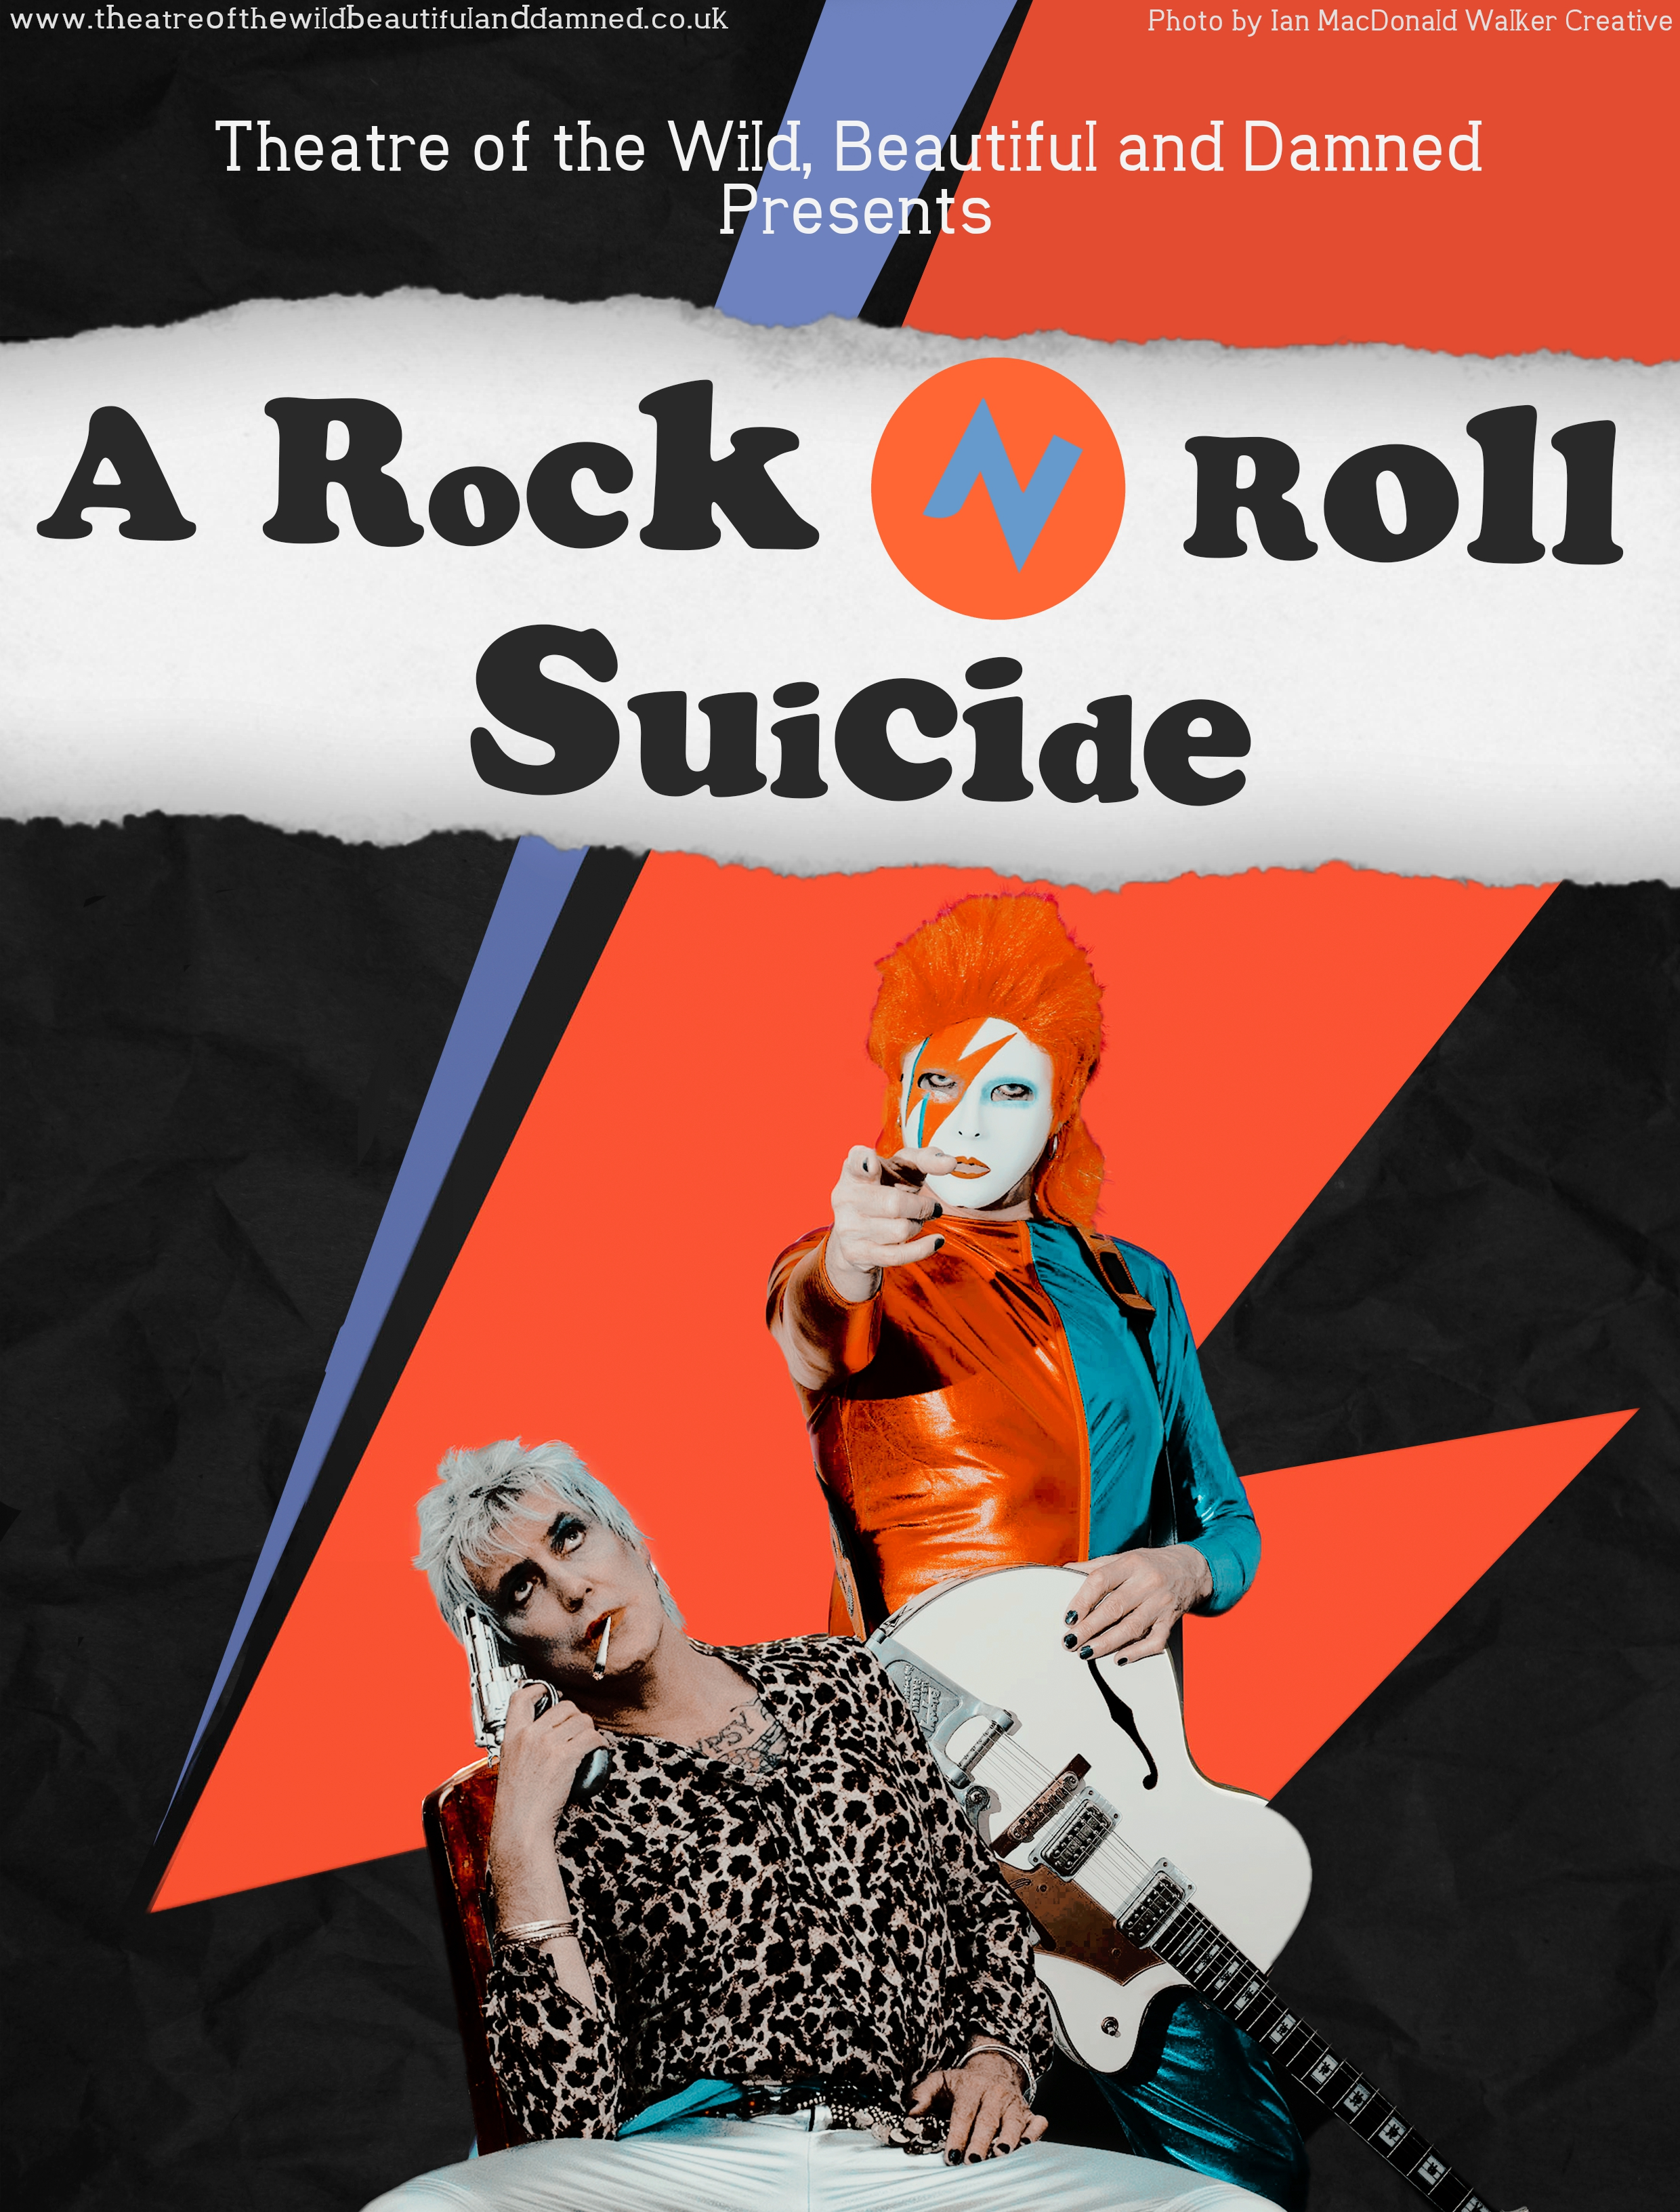 A Rock N Roll Suicide poster & flyer